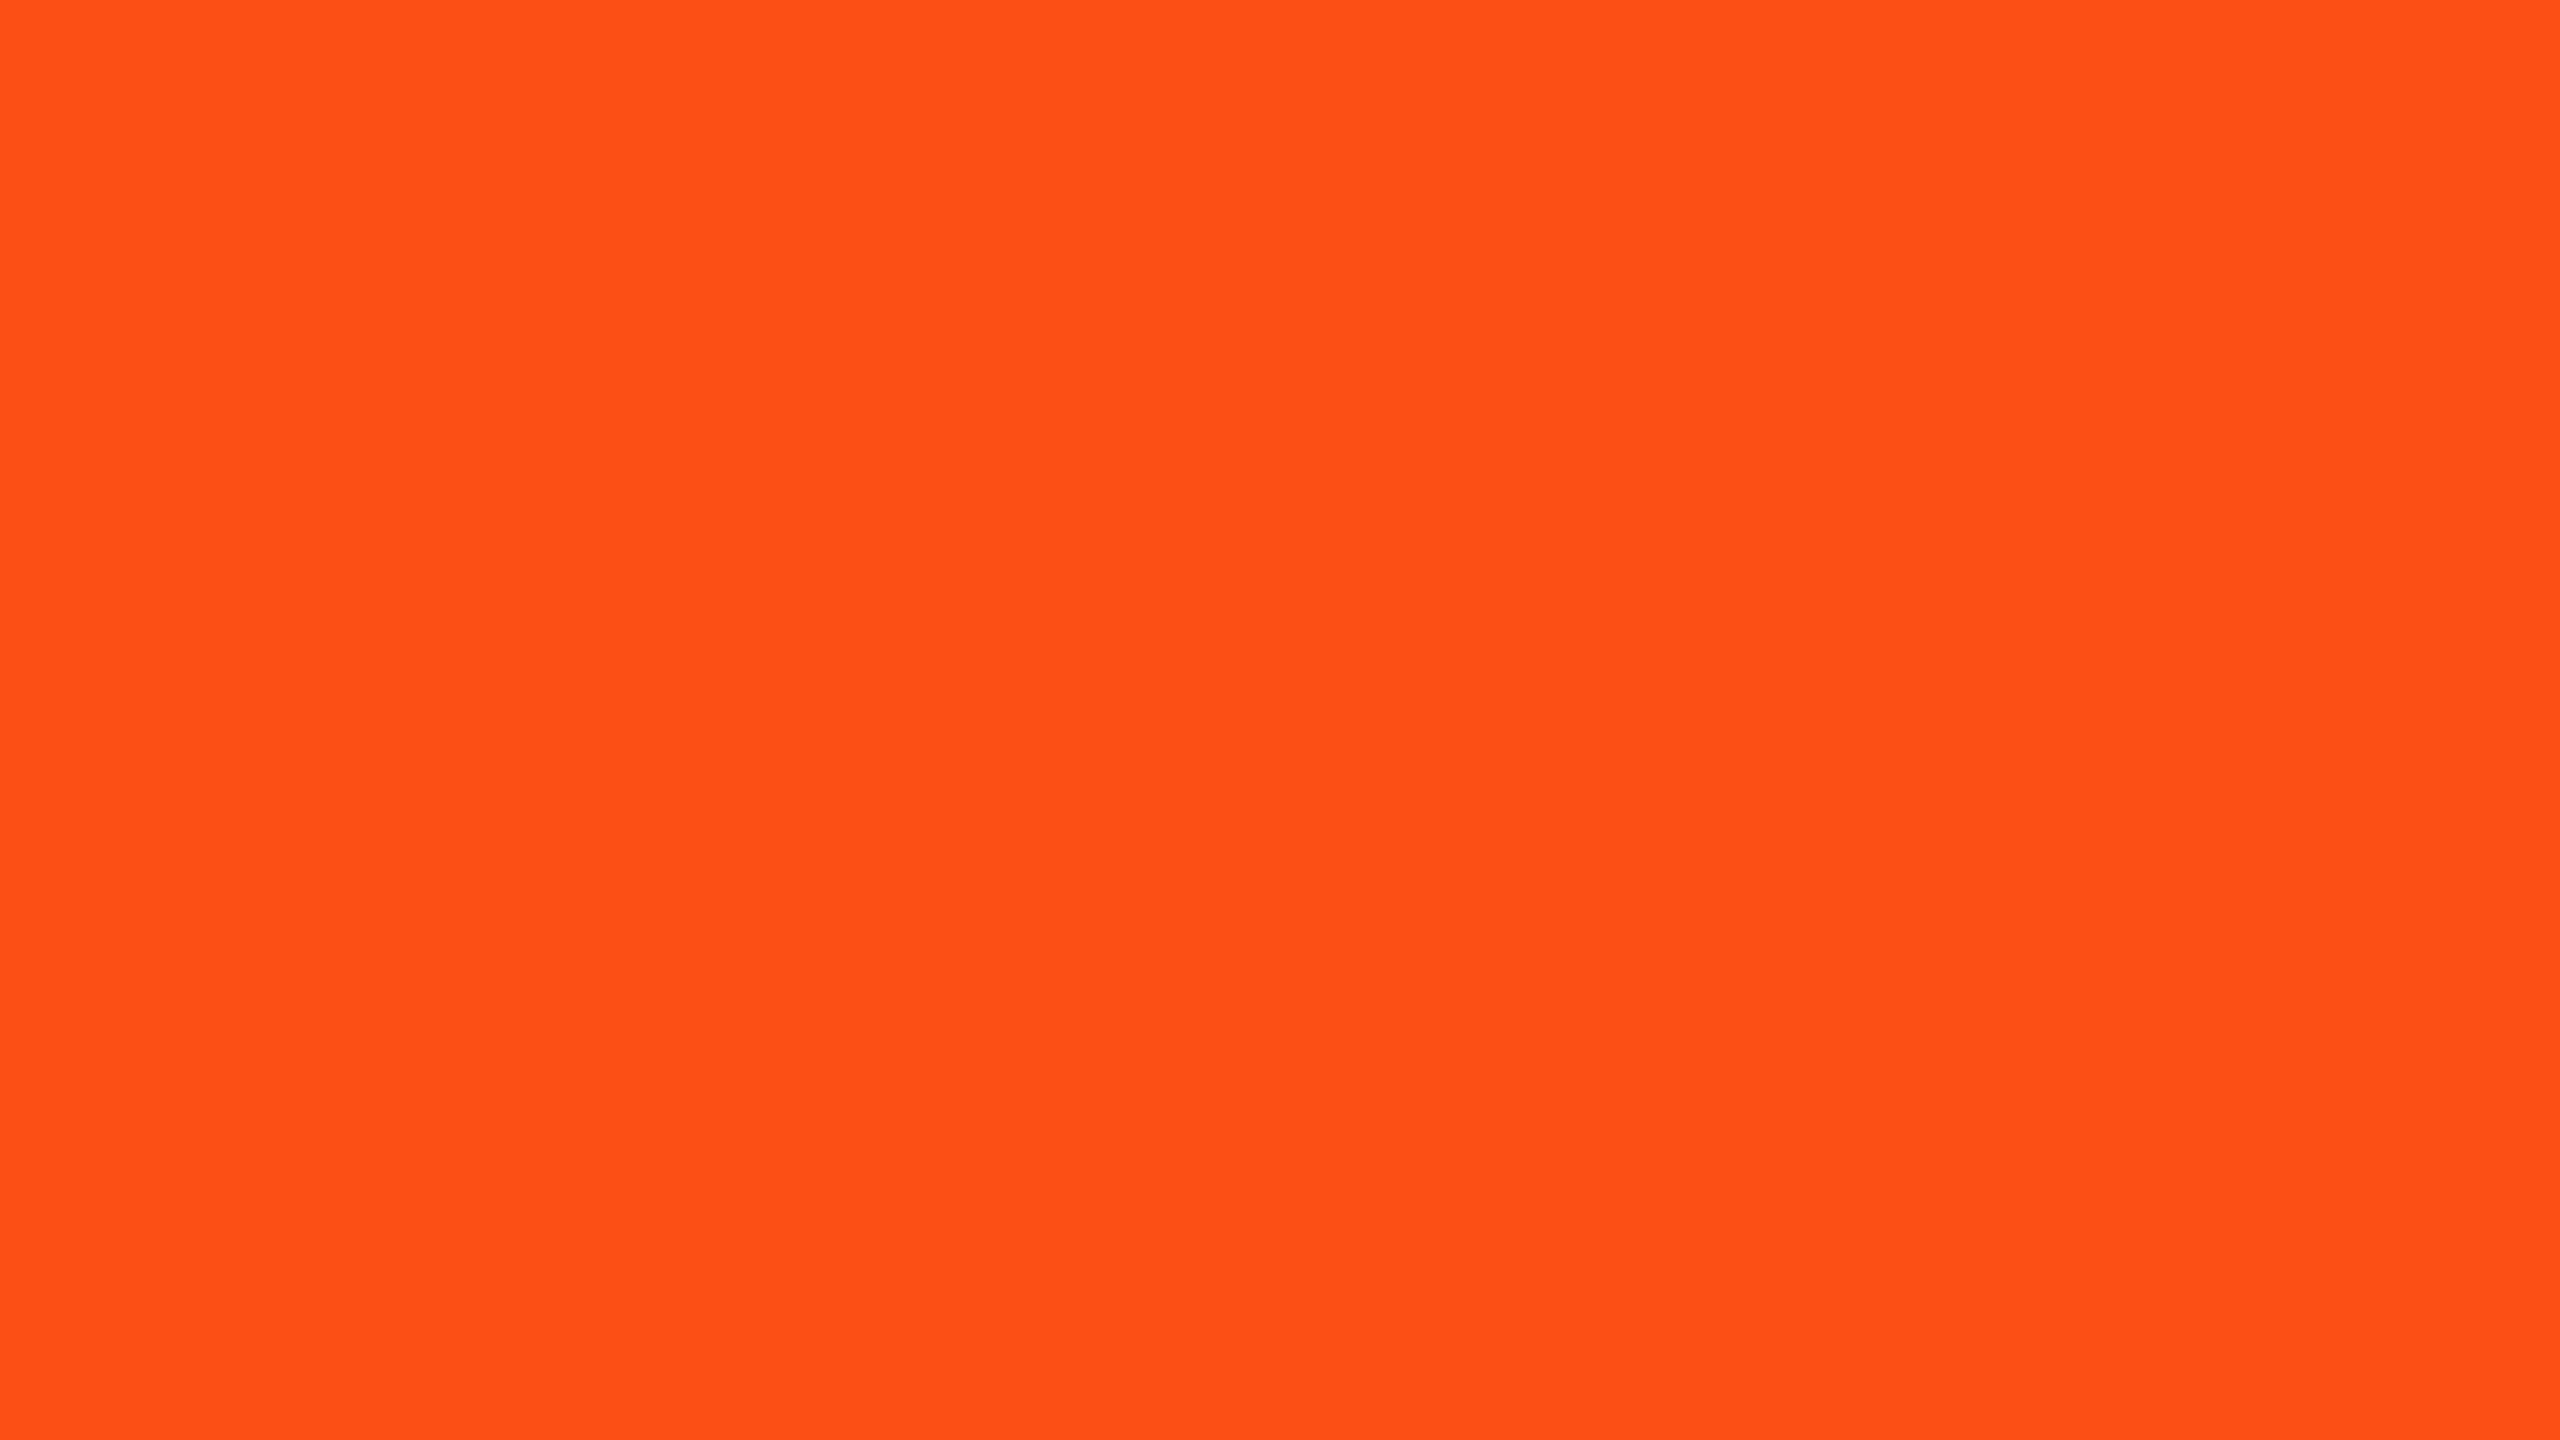 Farrow and ball colour chart likewise solid color orange as well